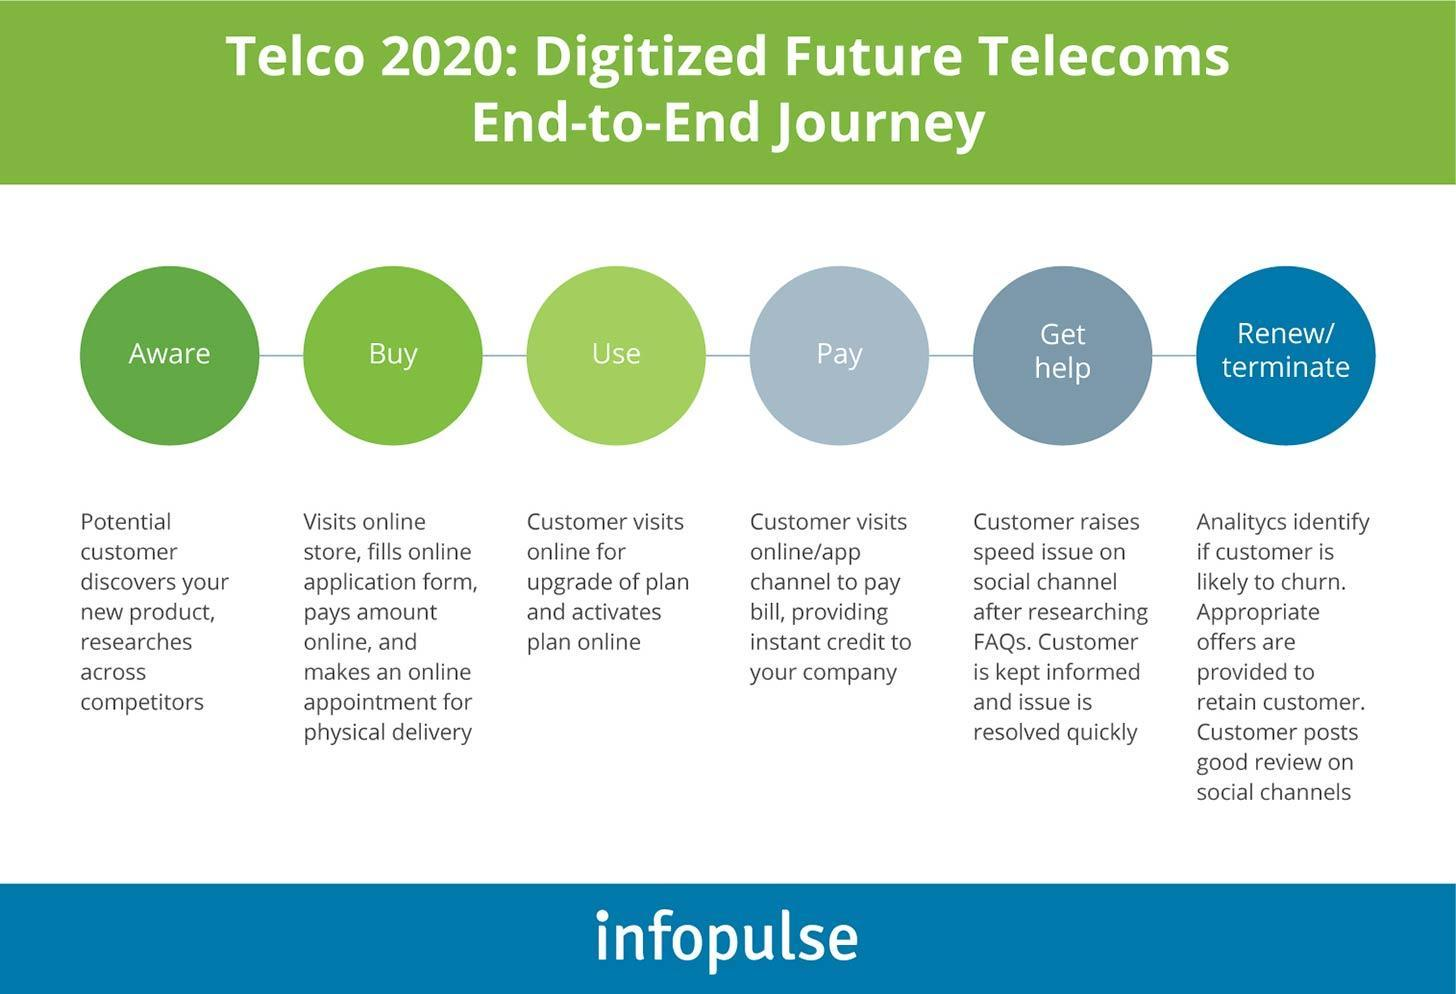 telco-2020-digitized-future-telecoms-end-to-end-journey.jpg